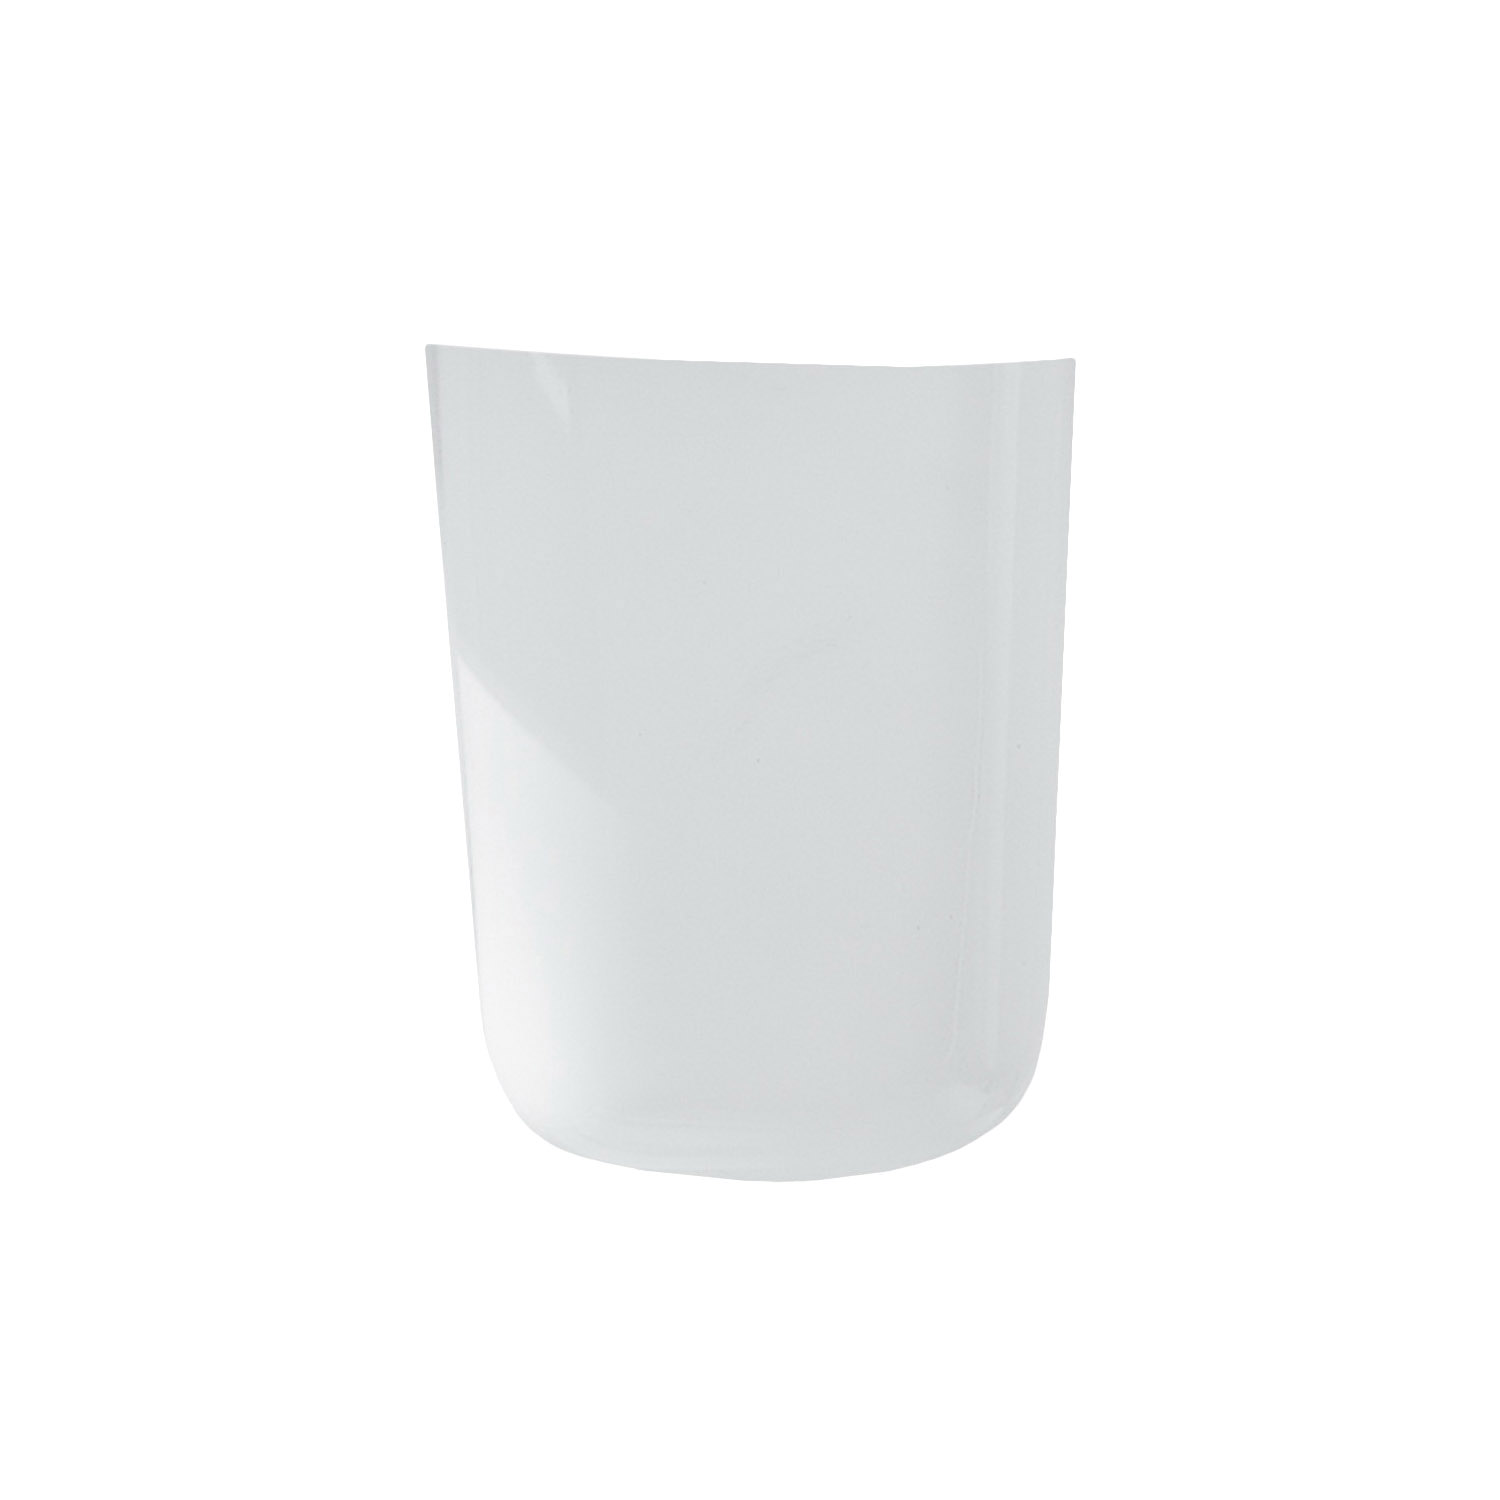 American Standard 0059020EC.020 Murro™ Universal Design Wall-Hung Shroud/Knee Contact Guard, Lavatory Sink, Wall Mount Installation, Vitreous China, 10 in L x 10-1/4 in H, Import